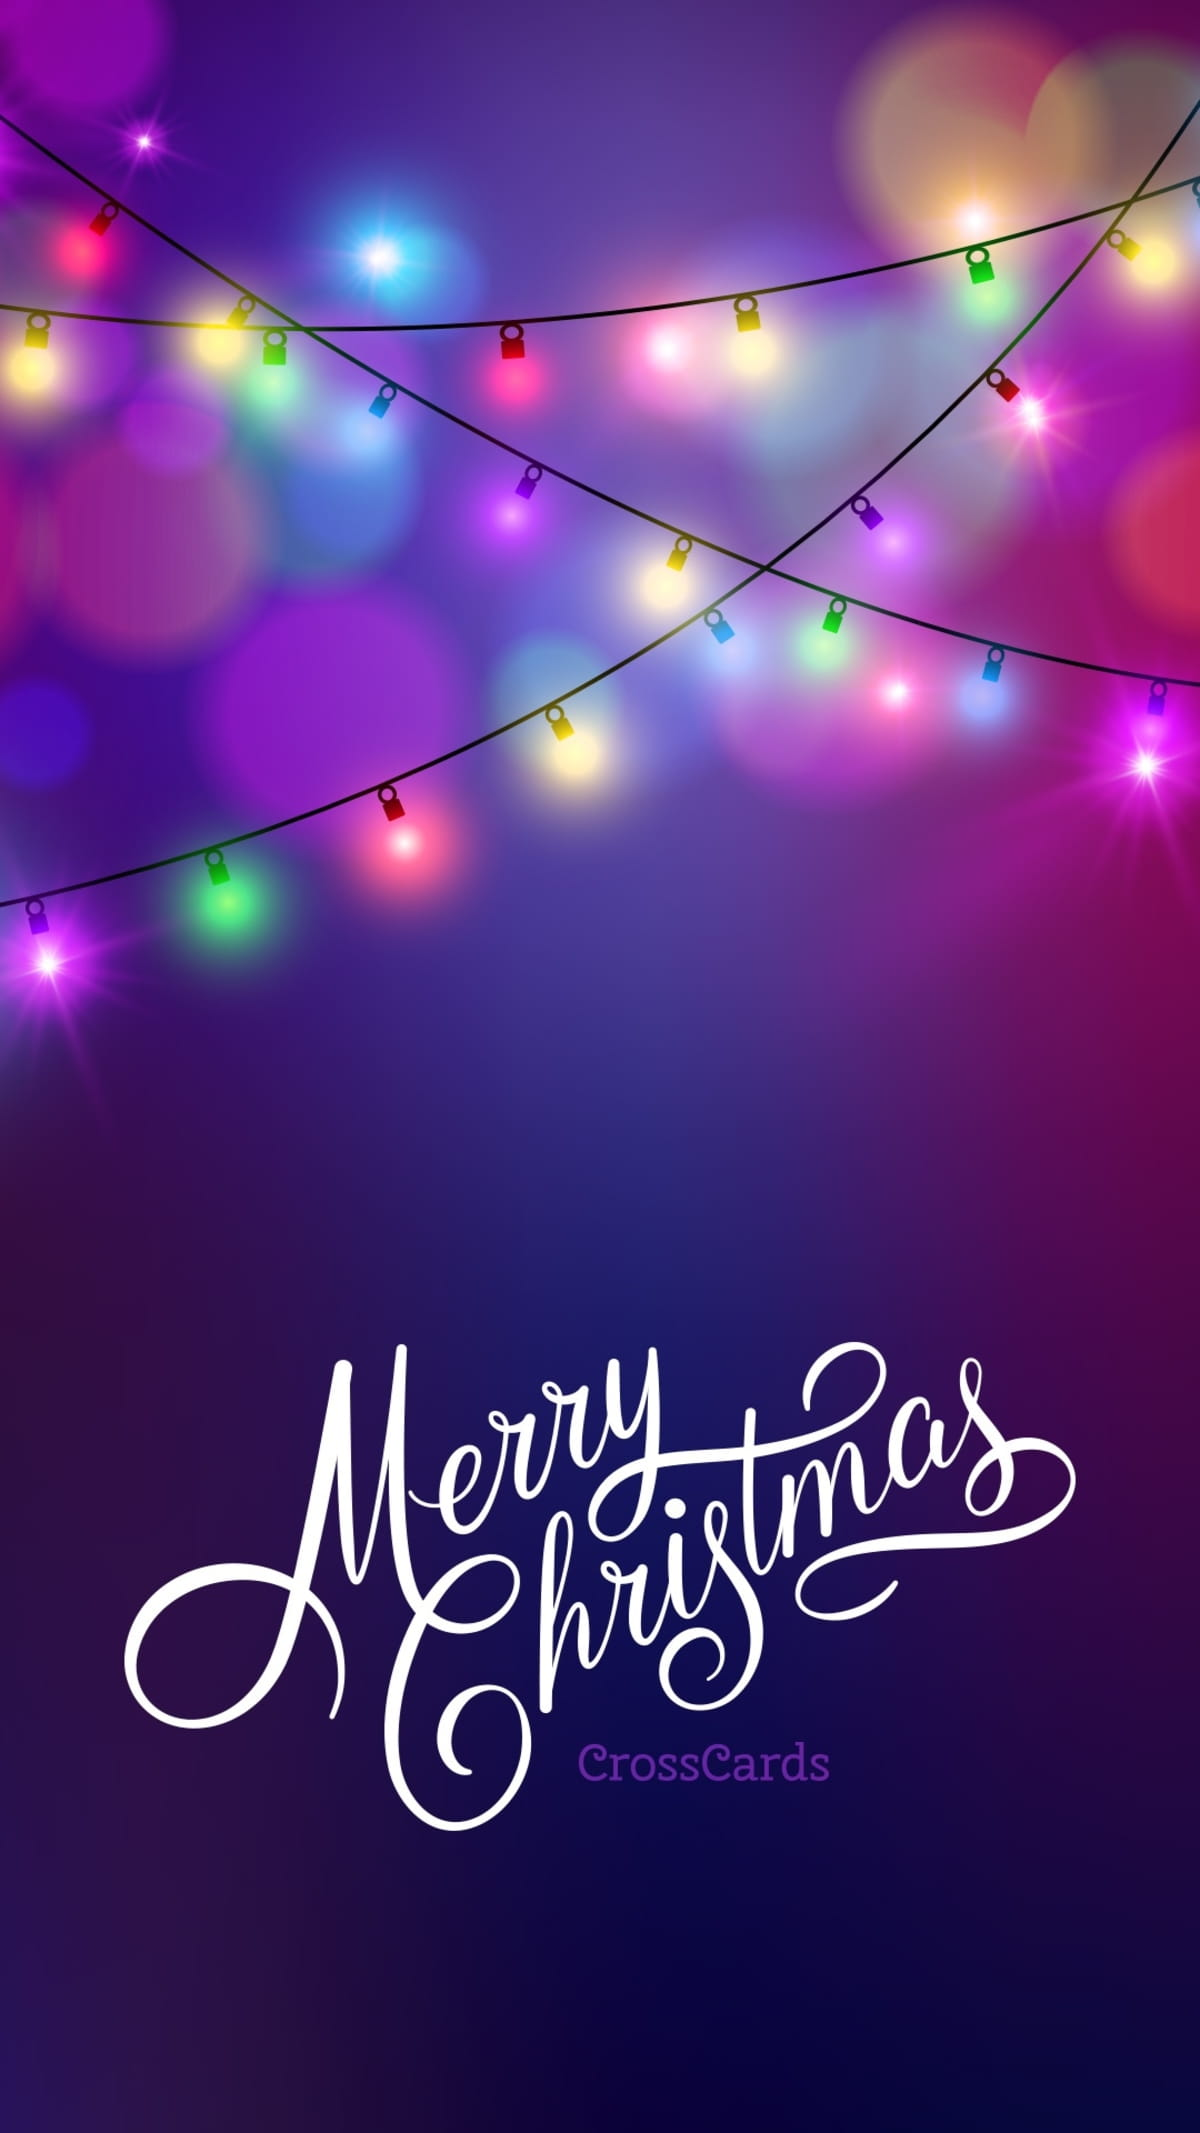 Merry Christmas  mobile phone wallpaper